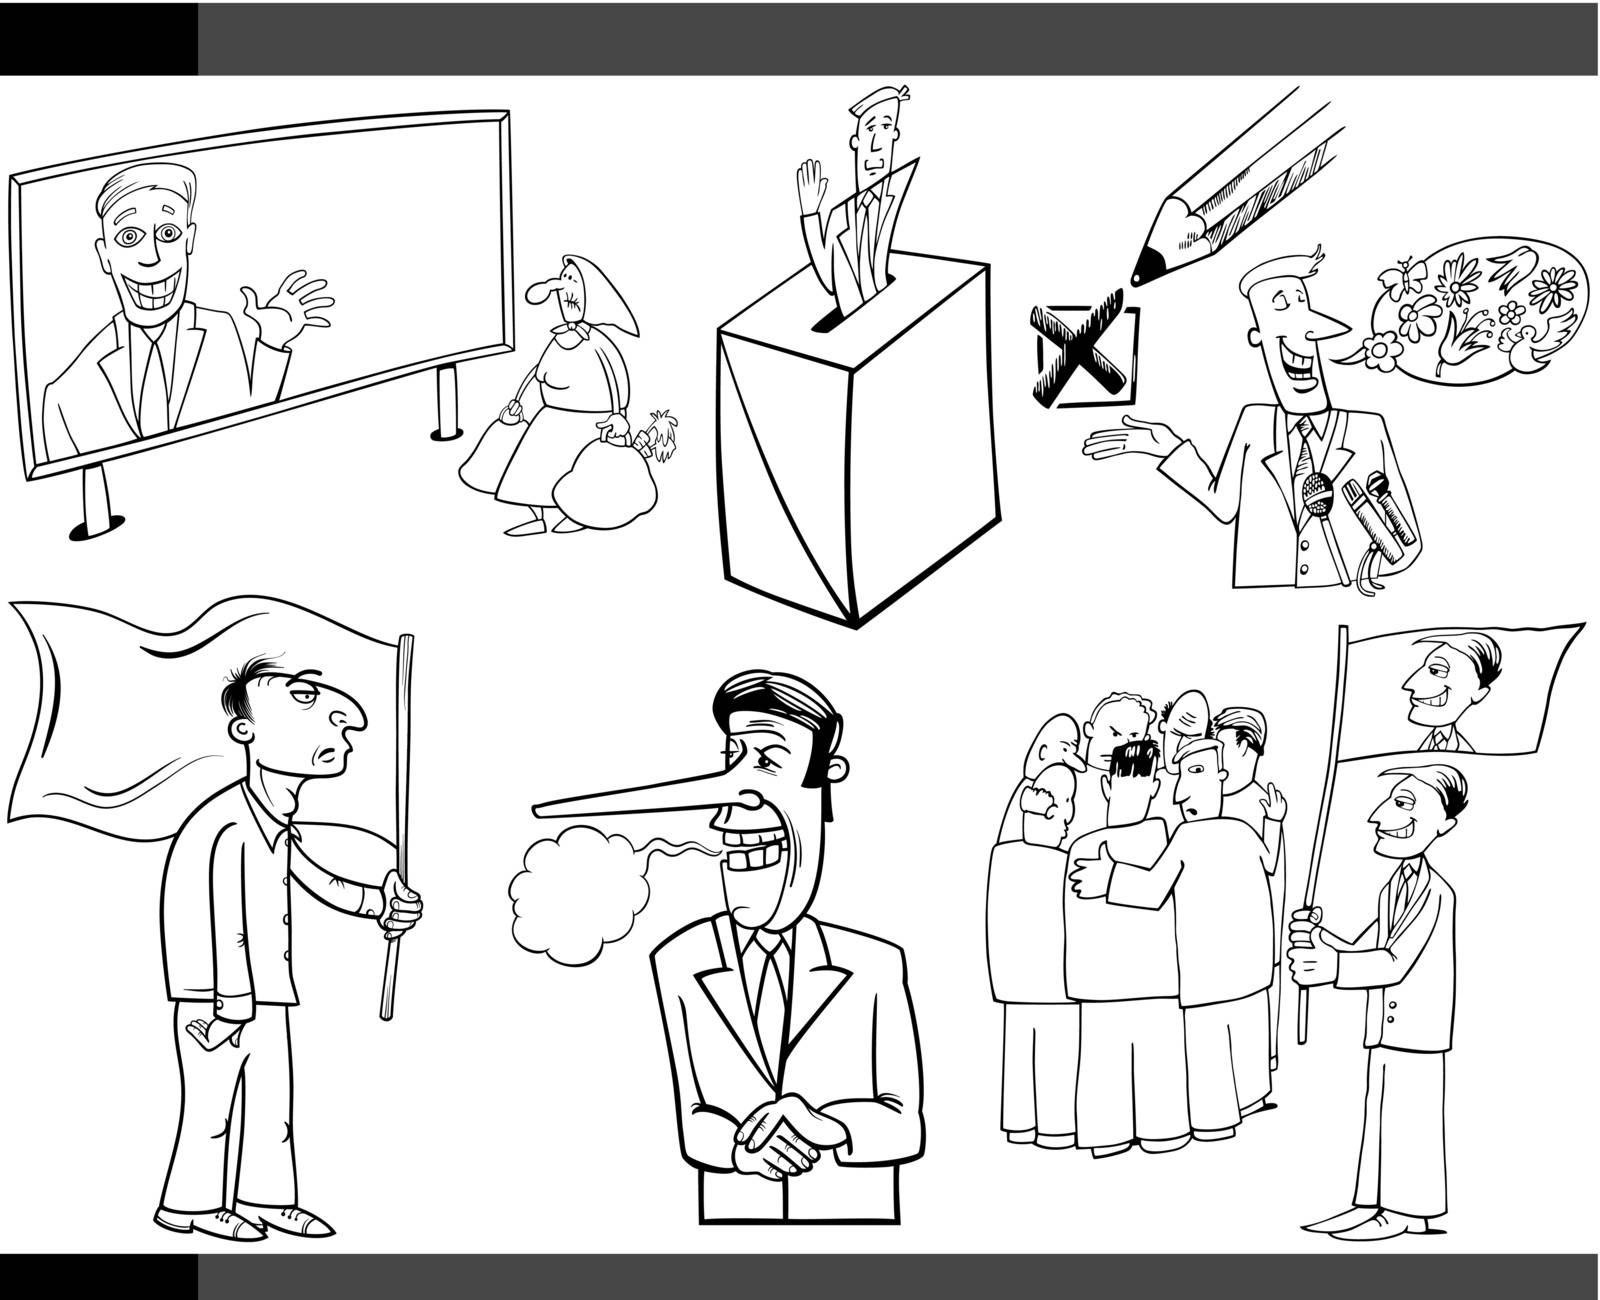 Black and White Illustration Set of Humorous Cartoon Concepts or and Metaphors of Politics and Democracy